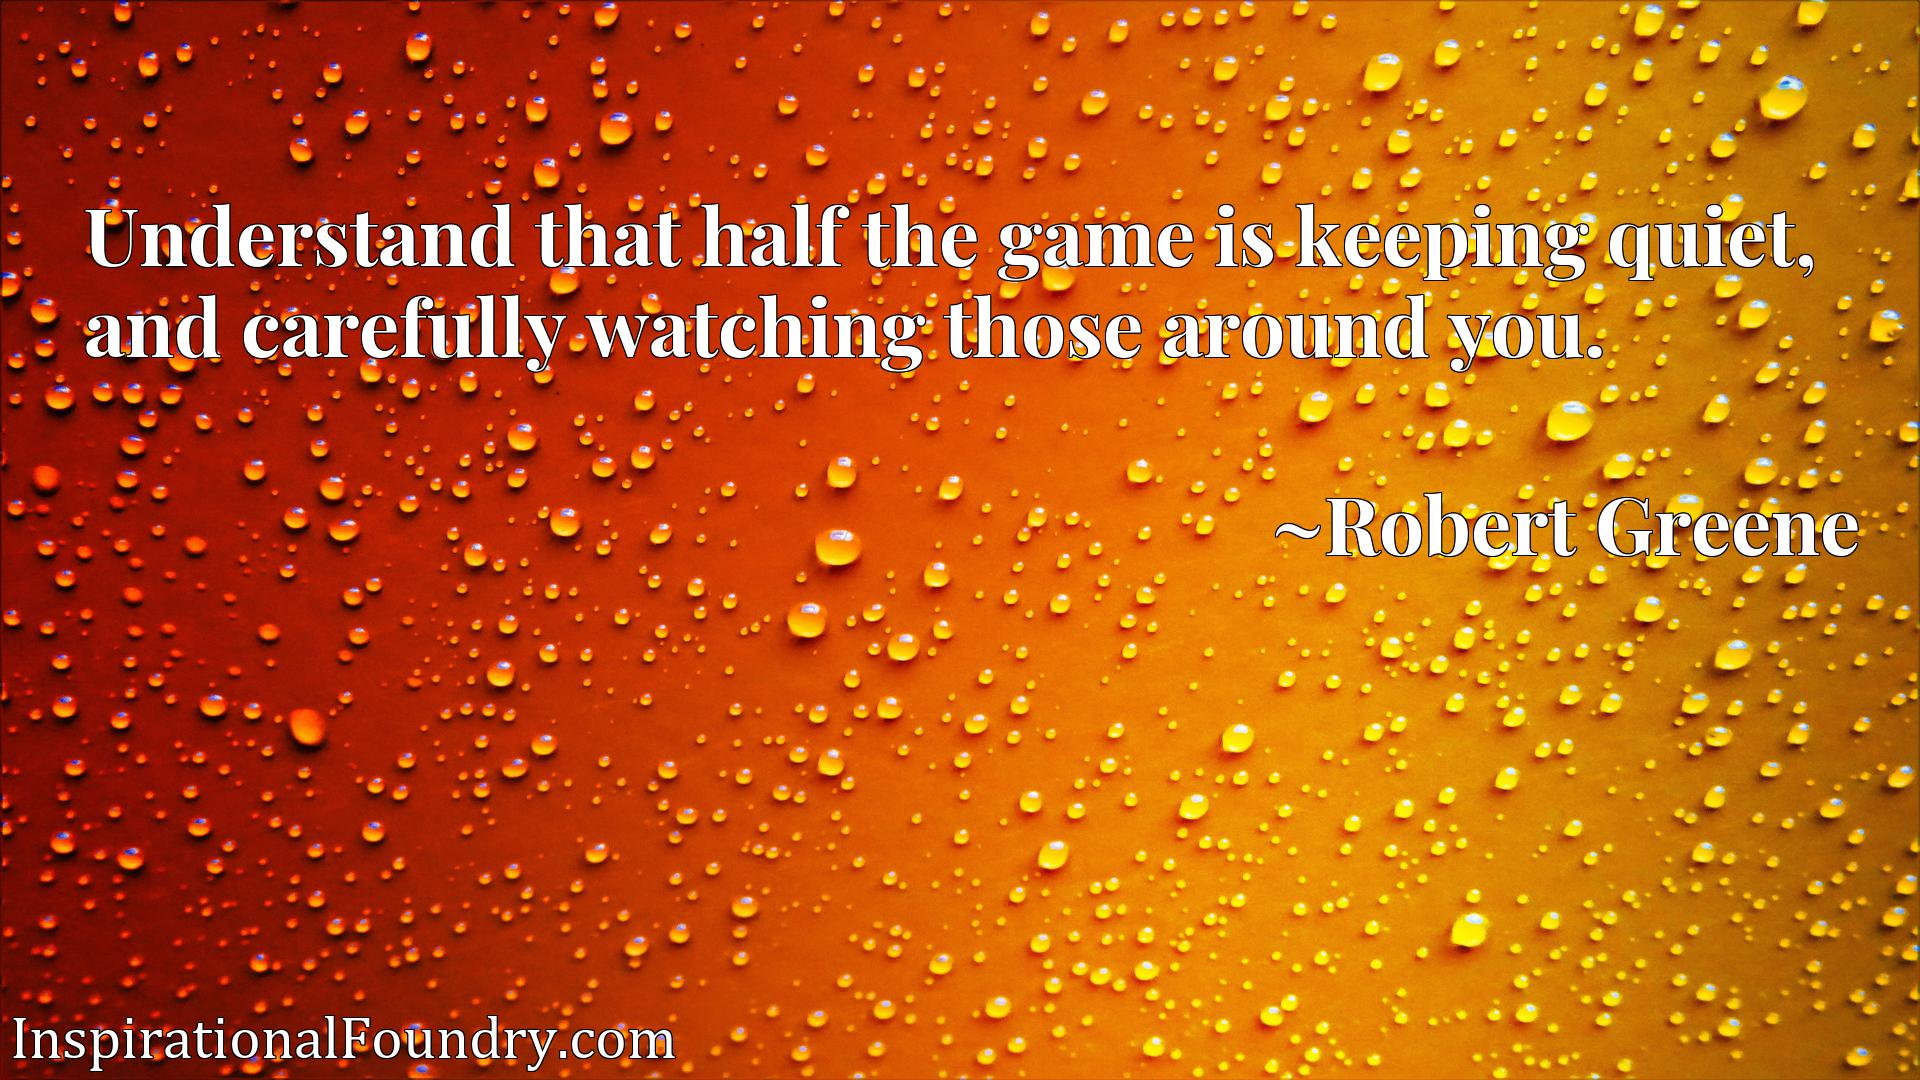 Understand that half the game is keeping quiet, and carefully watching those around you.